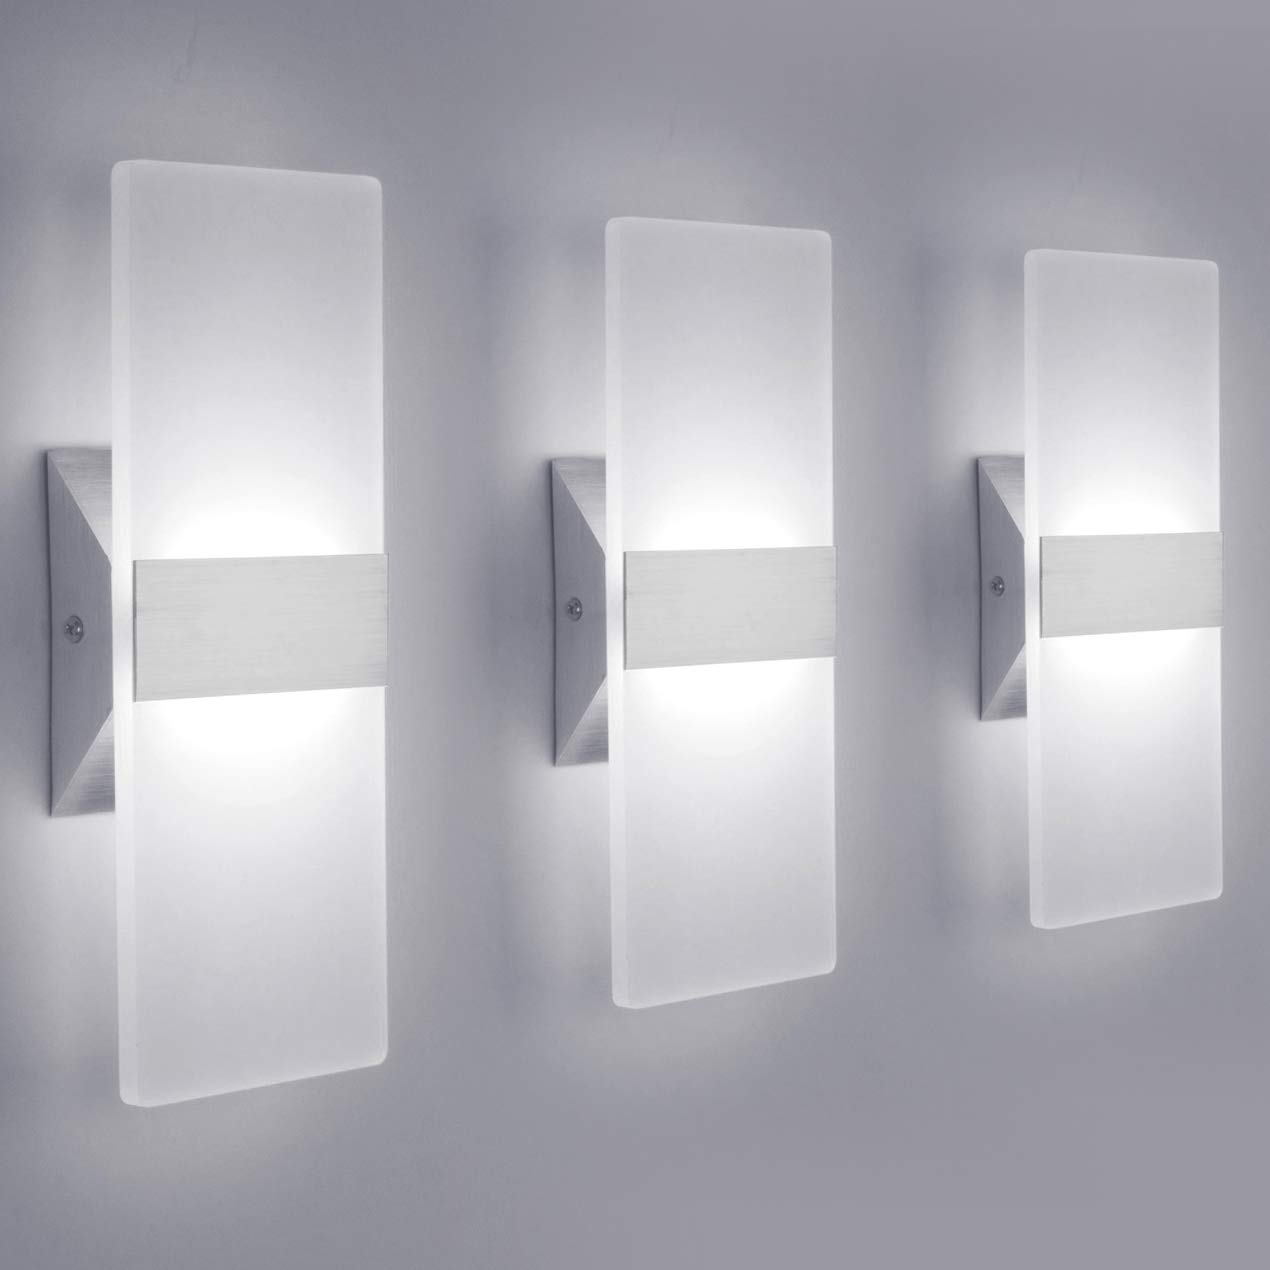 LED Wall Sconce Modern Wall Light Lamps 12W Cool White 6000K Up and Down Indoor Acrylic Lighting Fixture for Living Room Bedroom Hallway Conservatory Home Room Decor Not Dimmable(3 Pack)